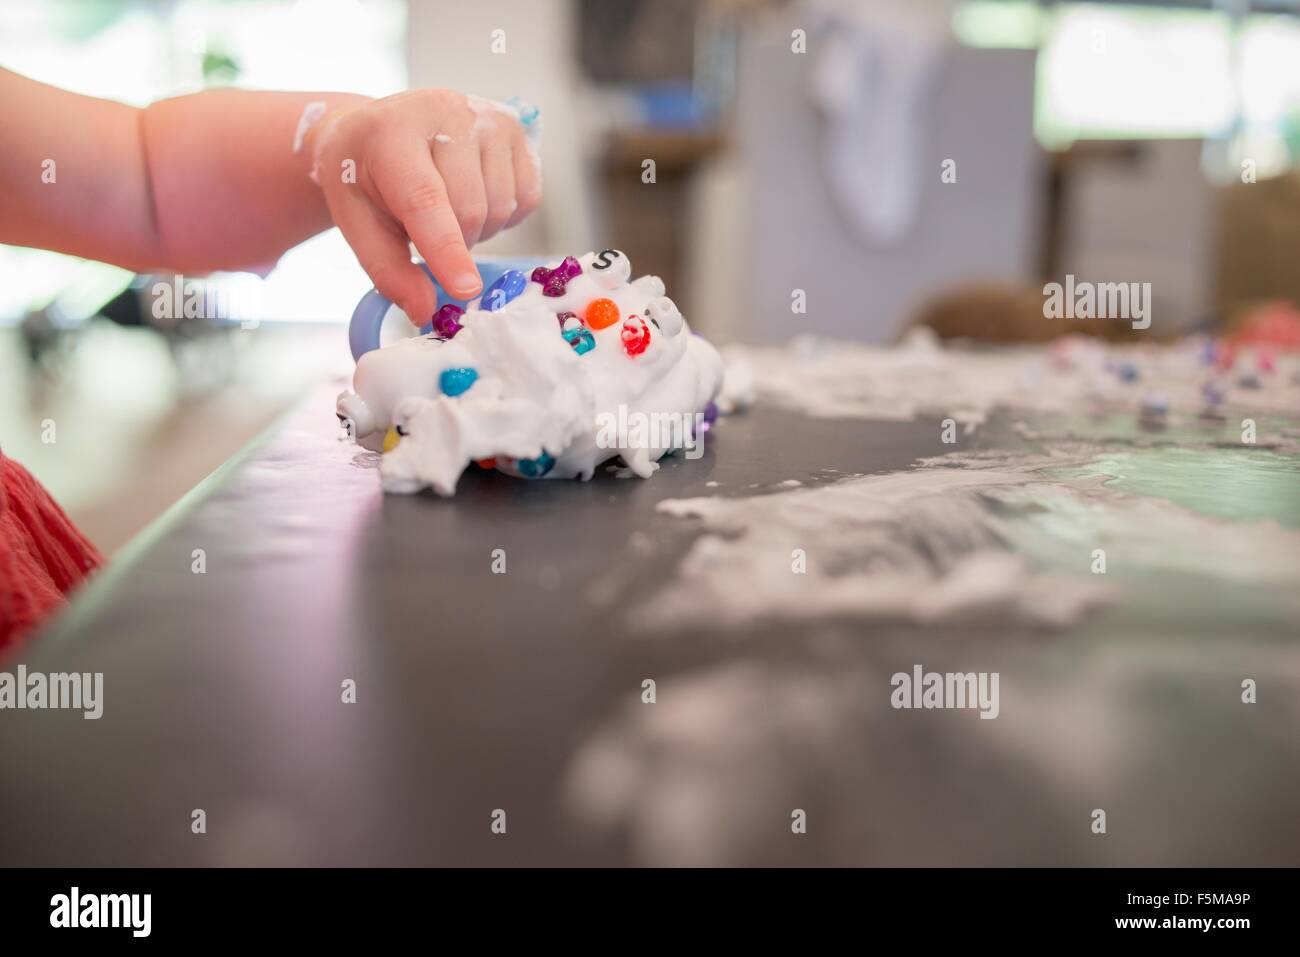 Young girl playing messy play at table - Stock Image